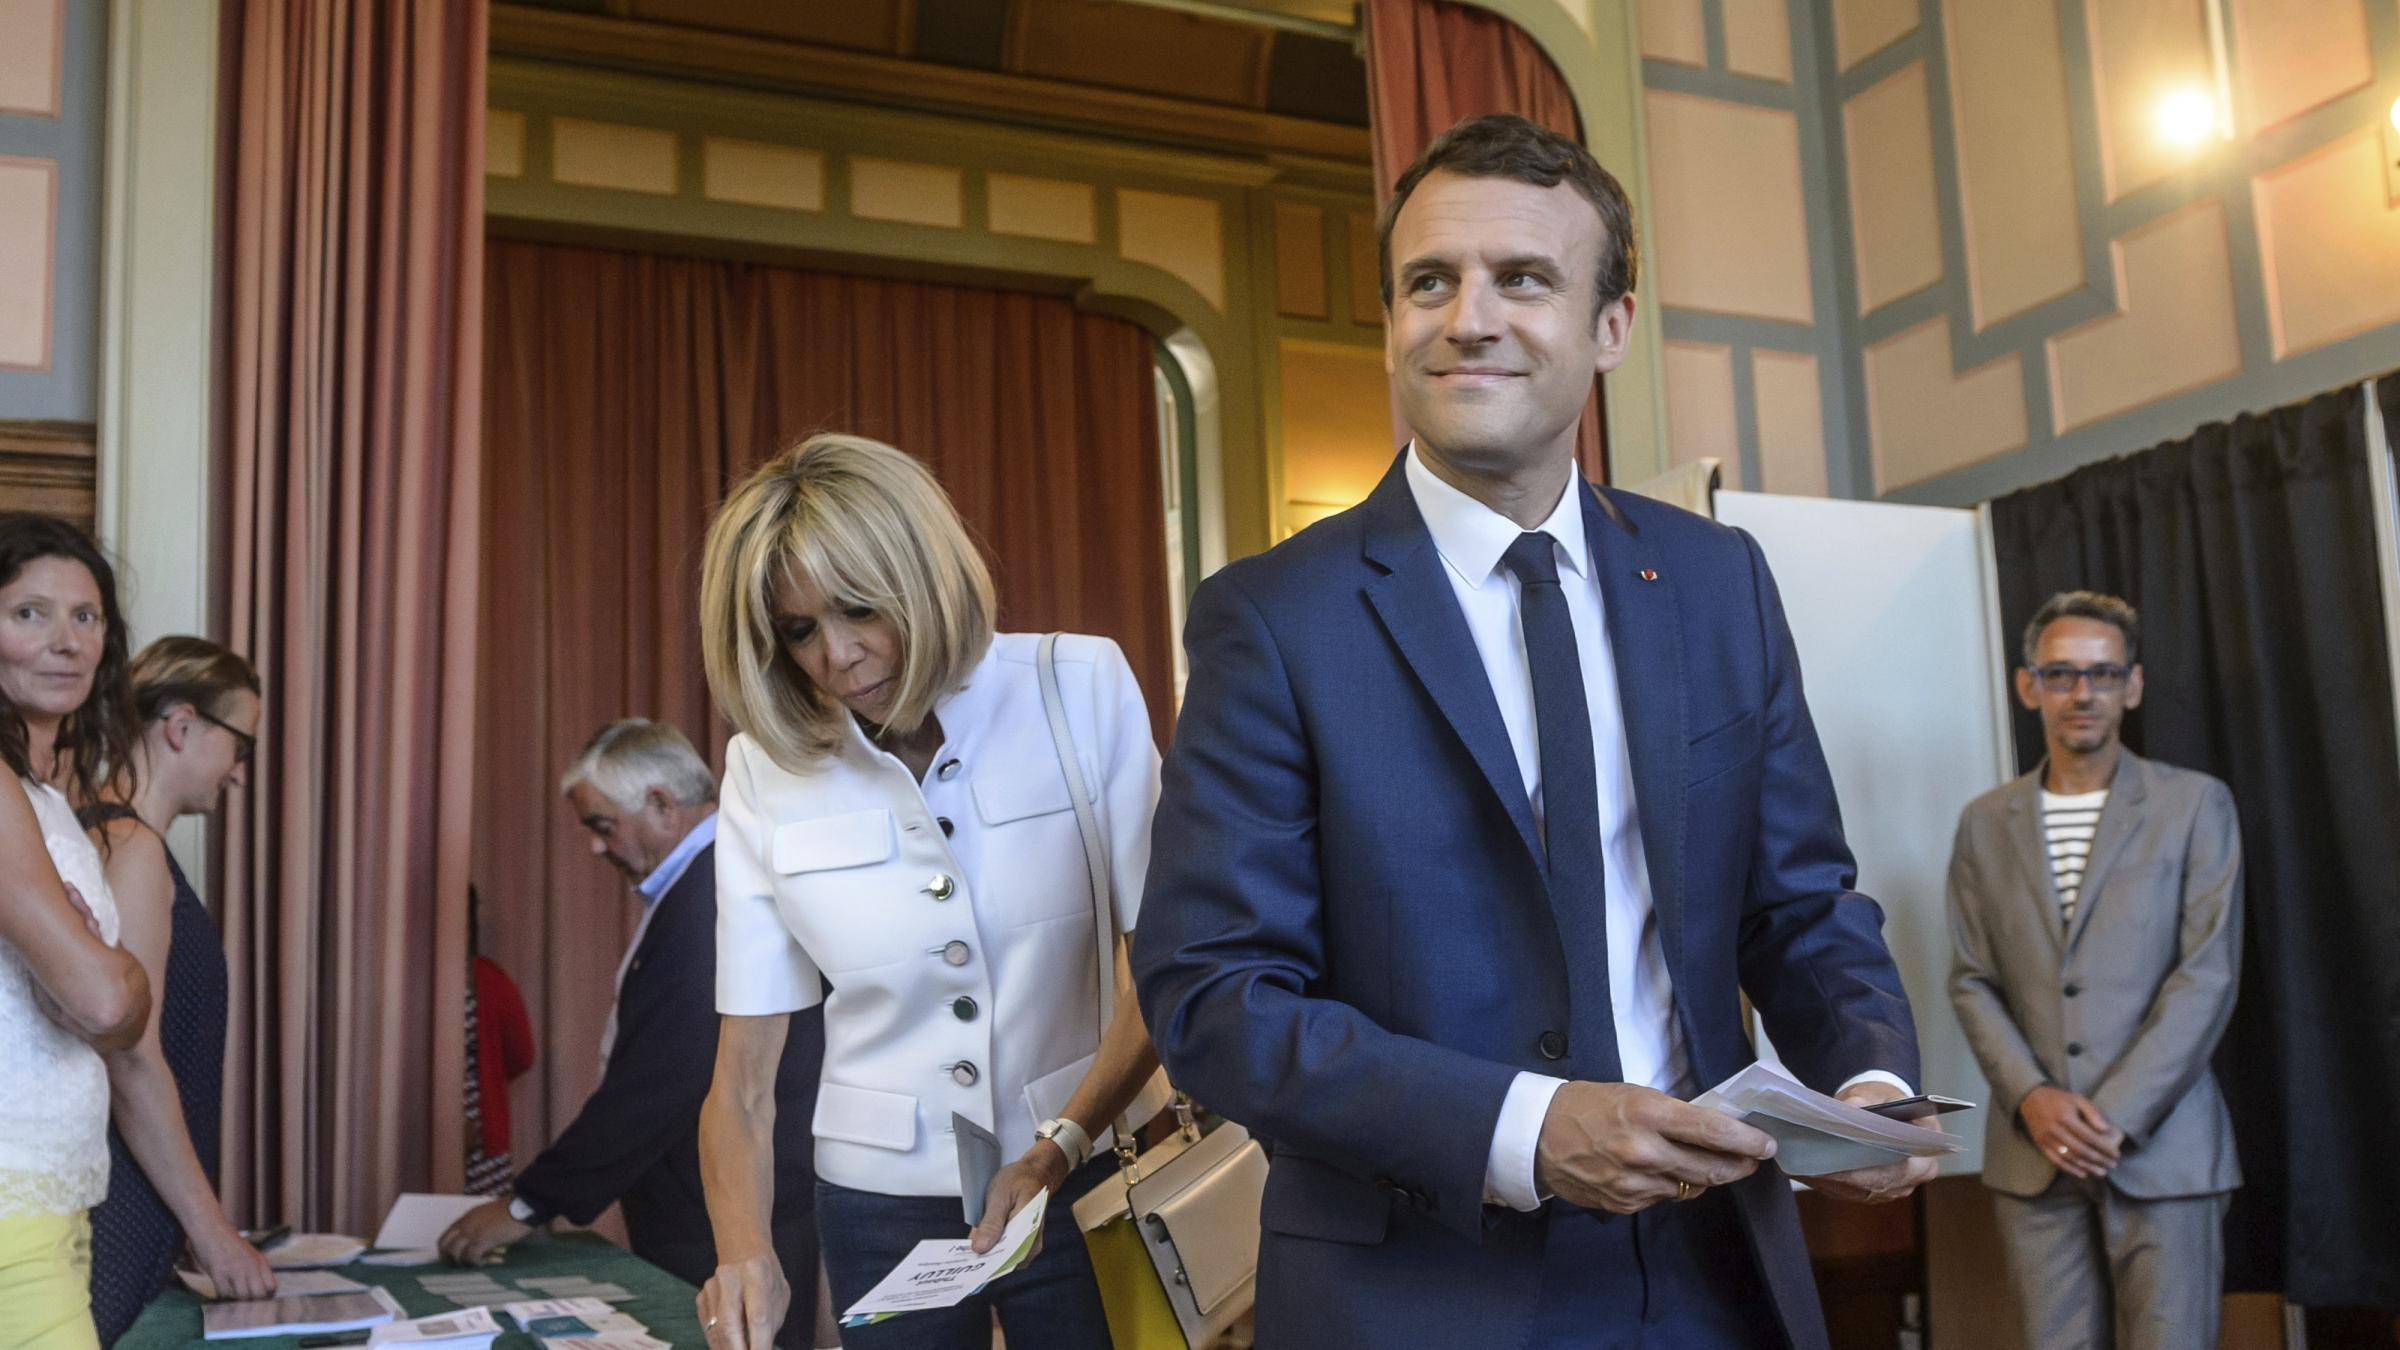 Macron's party set to win in French parliamentary elections